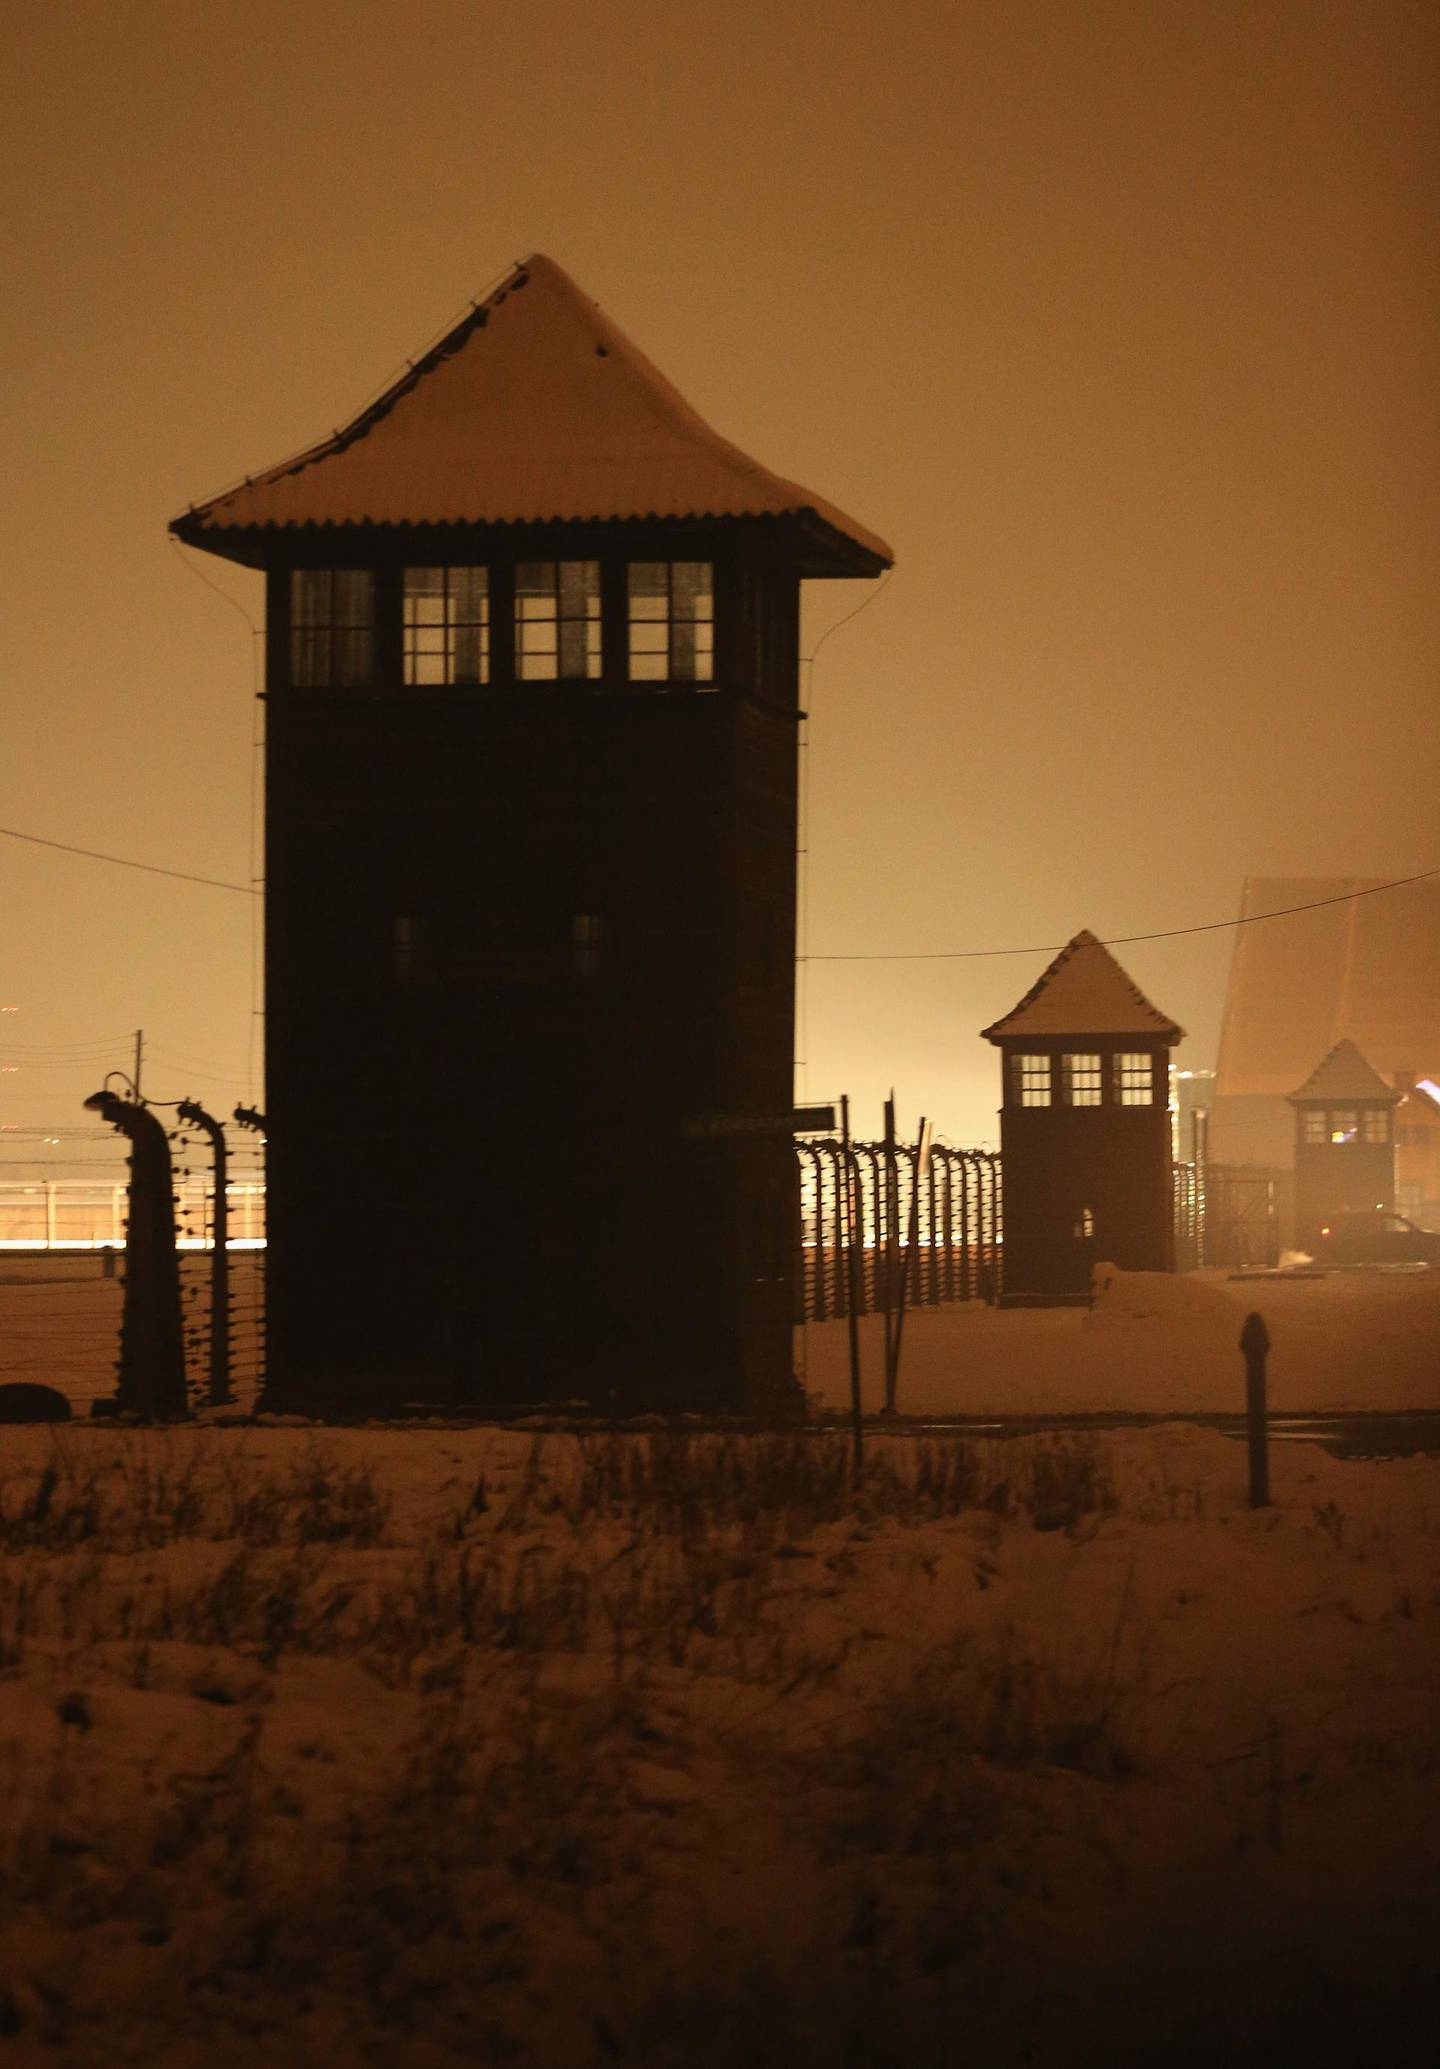 OSWIECIM, POLAND - JANUARY 26:  Guard towers and barbed wire fences stand at the former Auschwitz-Birkenau concentration camp on the night prior to commemoration events marking the 70th anniversary of the liberation of the camp on January 26, 2015 in Oswiecim, Poland. International heads of state, dignitaries and over 300 Auschwitz survivors will commemorate the 70th anniversary of the liberation of Auschwitz by Soviet troops in 1945 on January 27. Auschwitz was among the most notorious of the concentration camps run by the Nazis to enslave and kill millions of Jews, political opponents, prisoners of war, homosexuals and Roma.  (Photo by Sean Gallup/Getty Images)